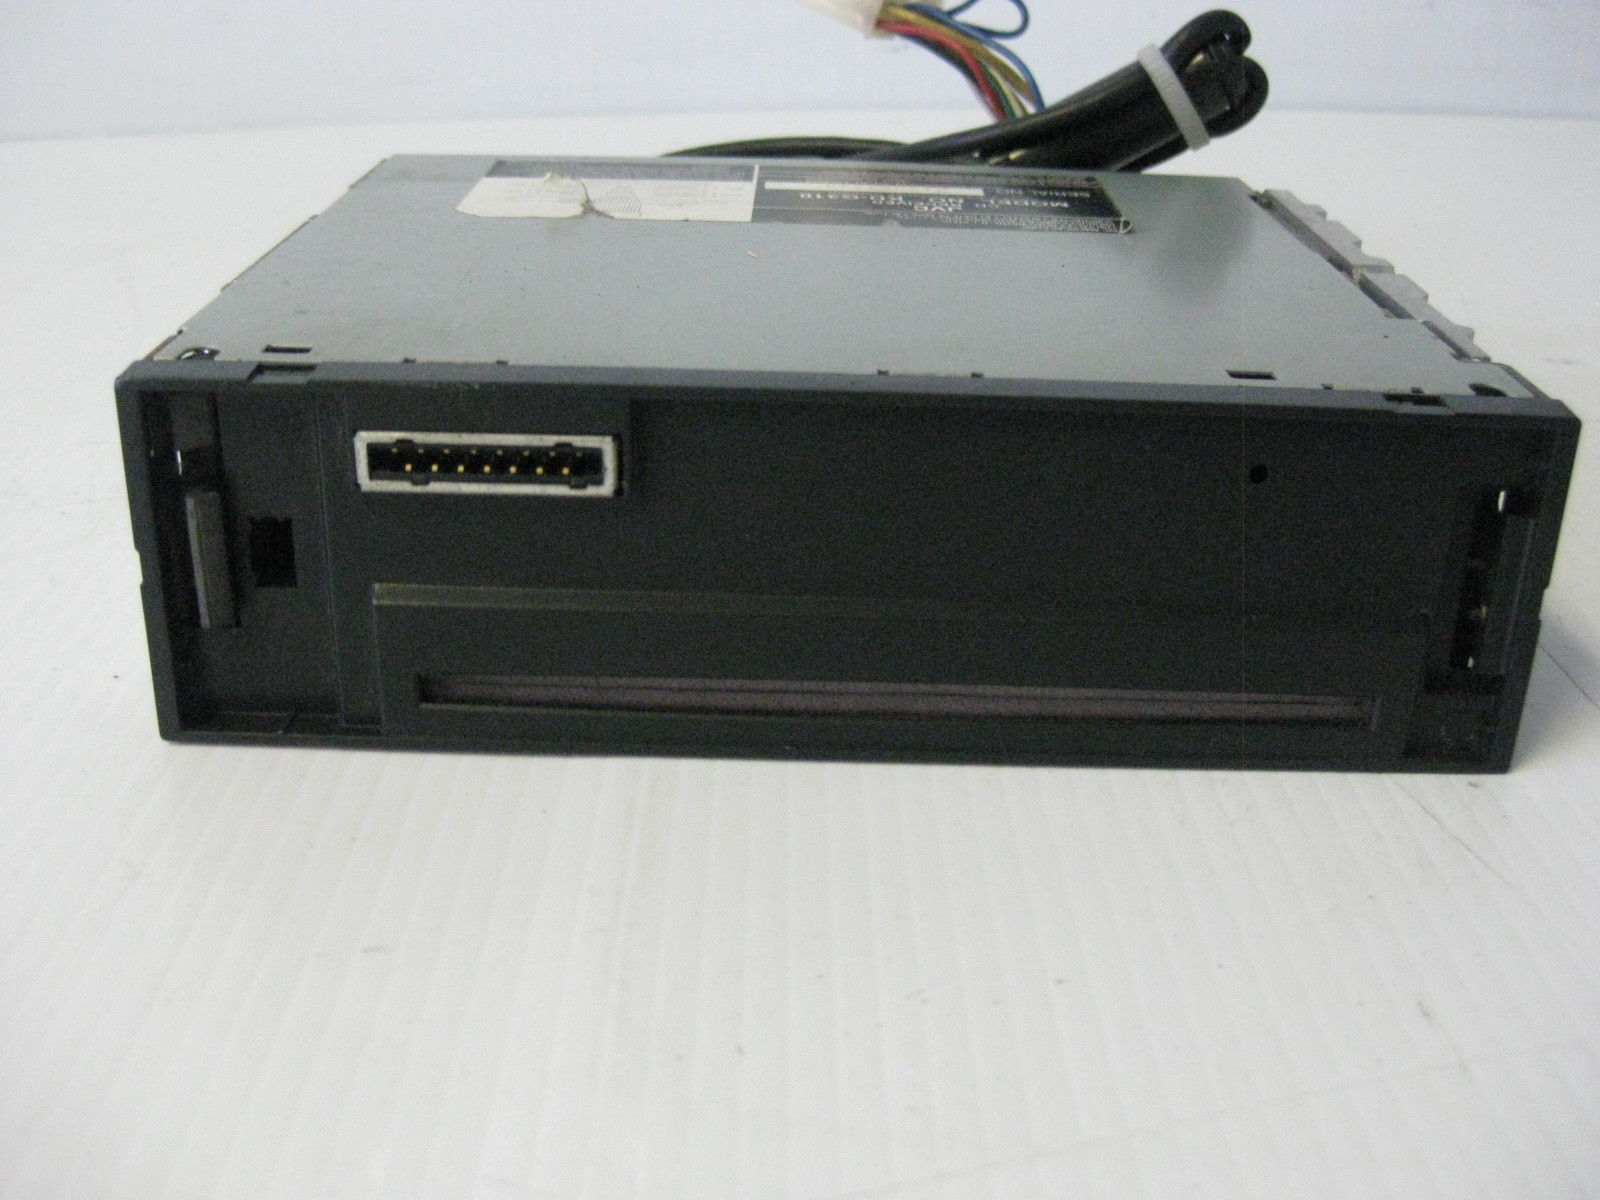 hight resolution of nissan maxima gle 1998 car stereo cd player and 16 similar items s l1600